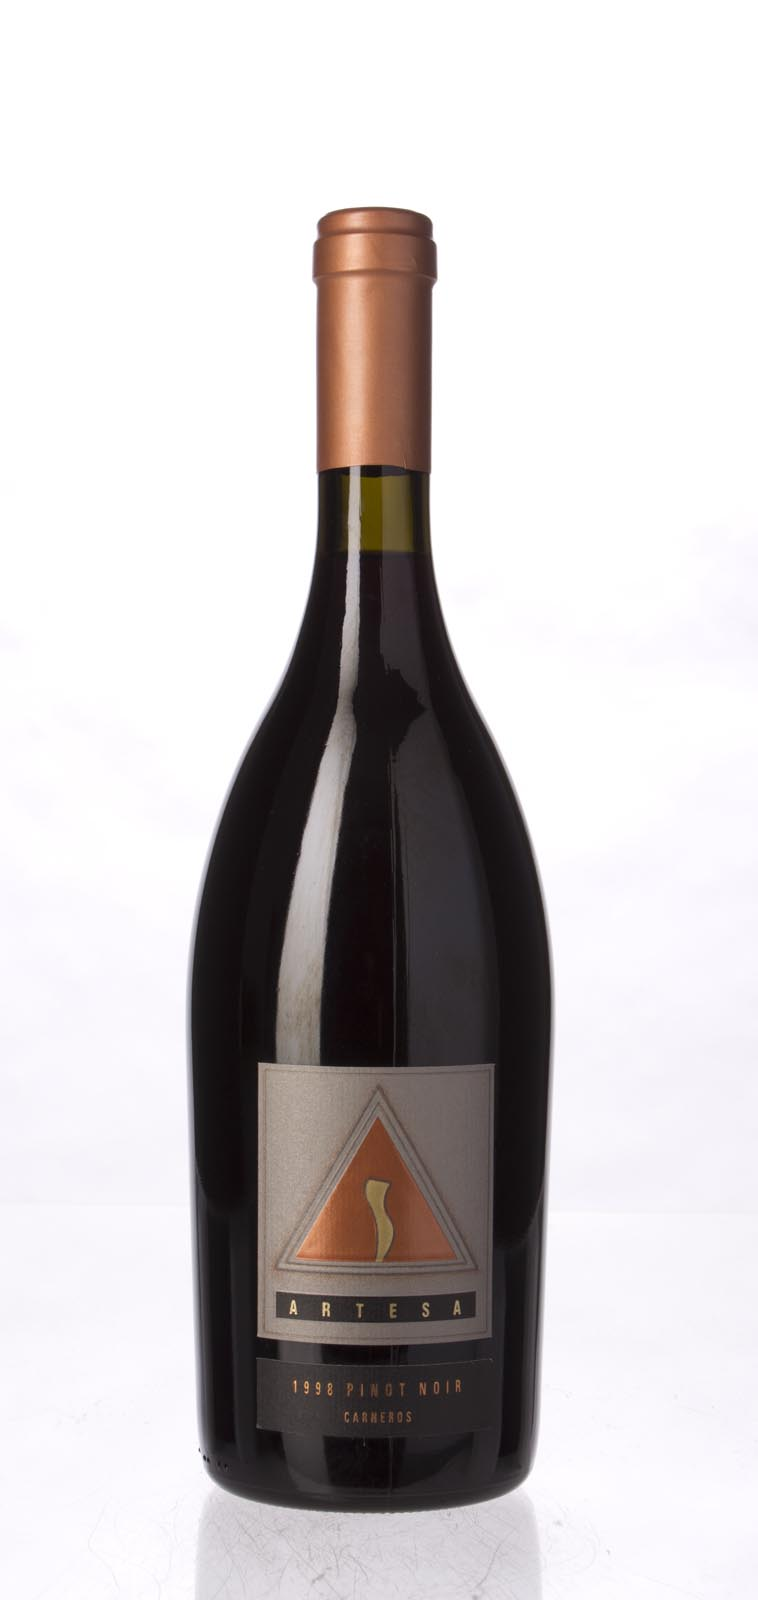 Artesa Pinot Noir Carneros 1998, 750mL () from The BPW - Merchants of rare and fine wines.